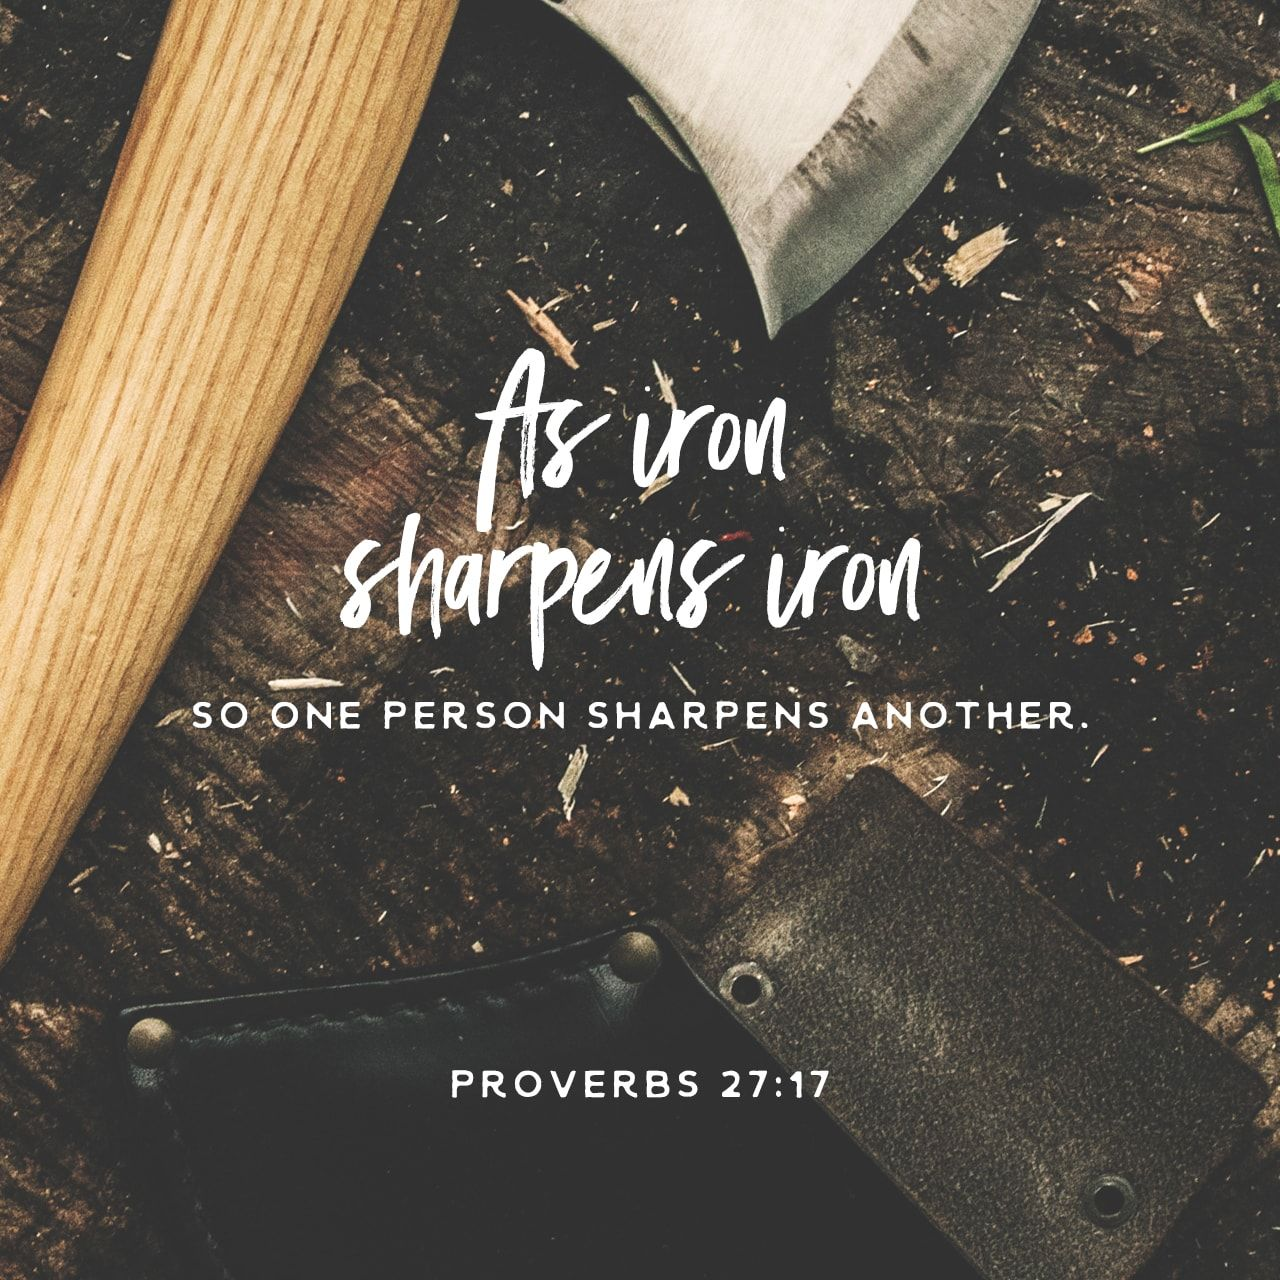 As Iron Sharpens Iron So One Person Sharpens Another Bible Apps Proverbs 27 17 Proverbs